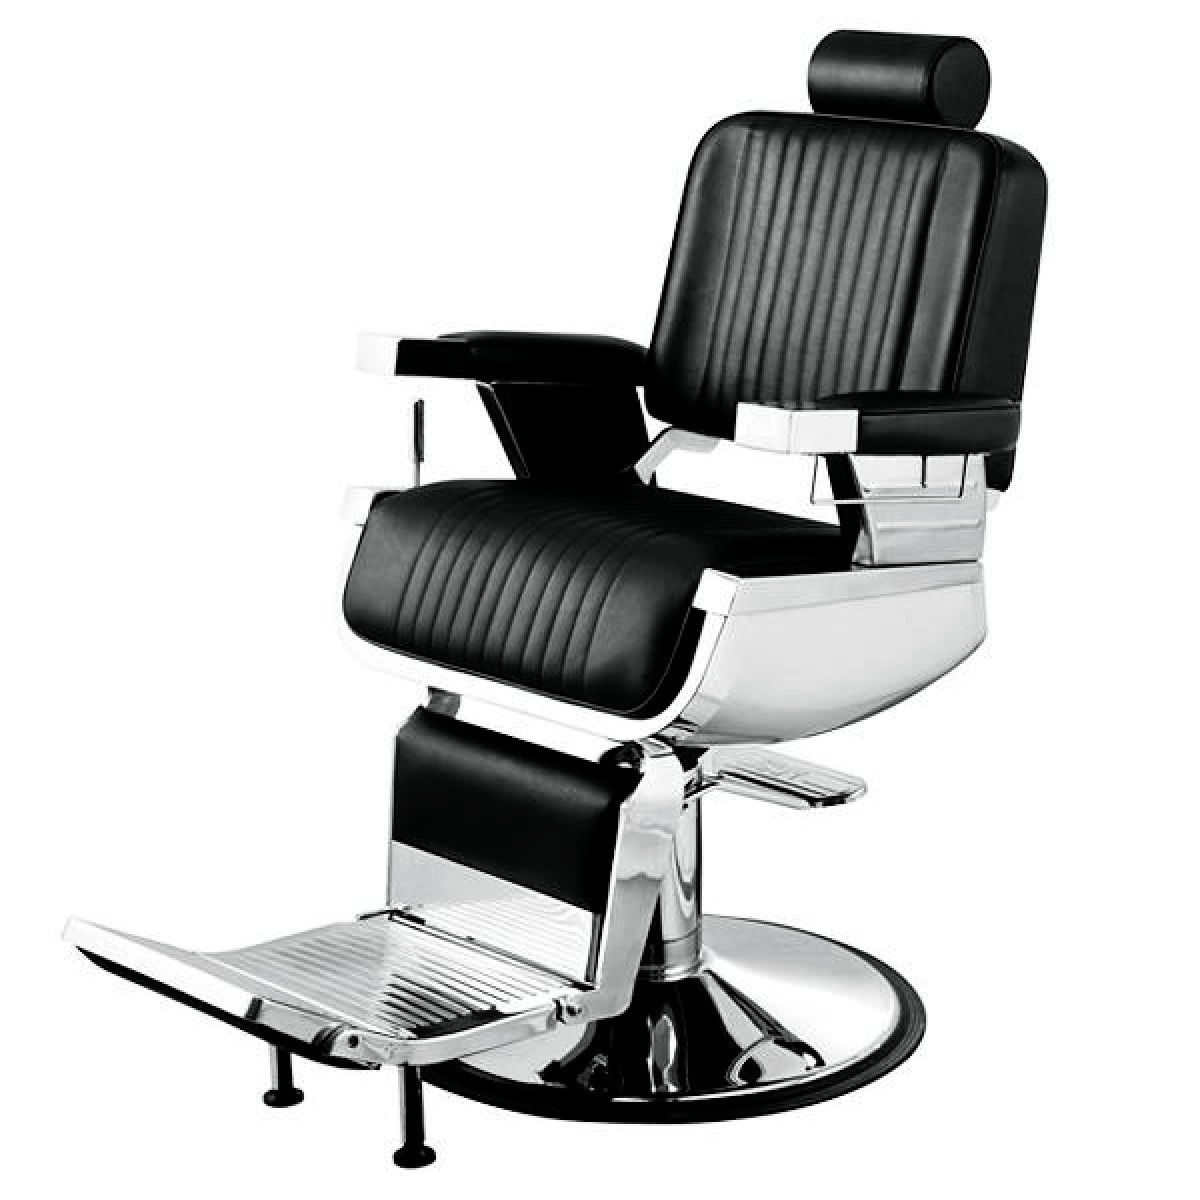 pedicure chair manufacturers back support for office chairs officeworks nail salon table supplier cheap on sale